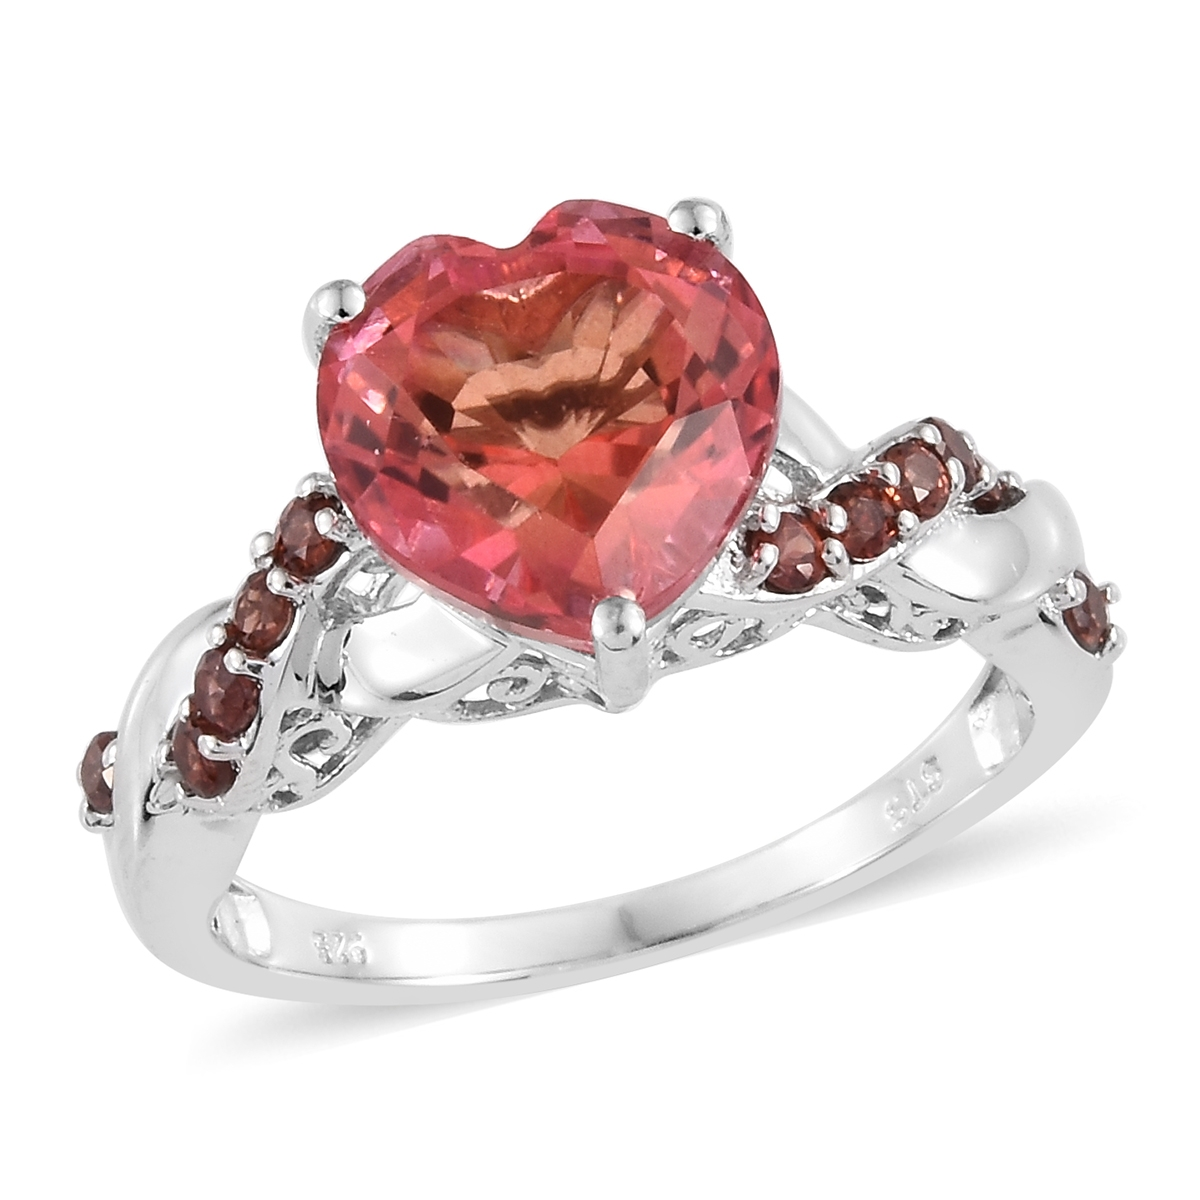 a19ea53d3 Padparadscha Color Quartz, Mozambique Garnet Platinum Over Sterling Silver Heart  Ring (Size 6.0) TGW 5.85 cts. | Fashion | Rings | Jewelry | online-store ...